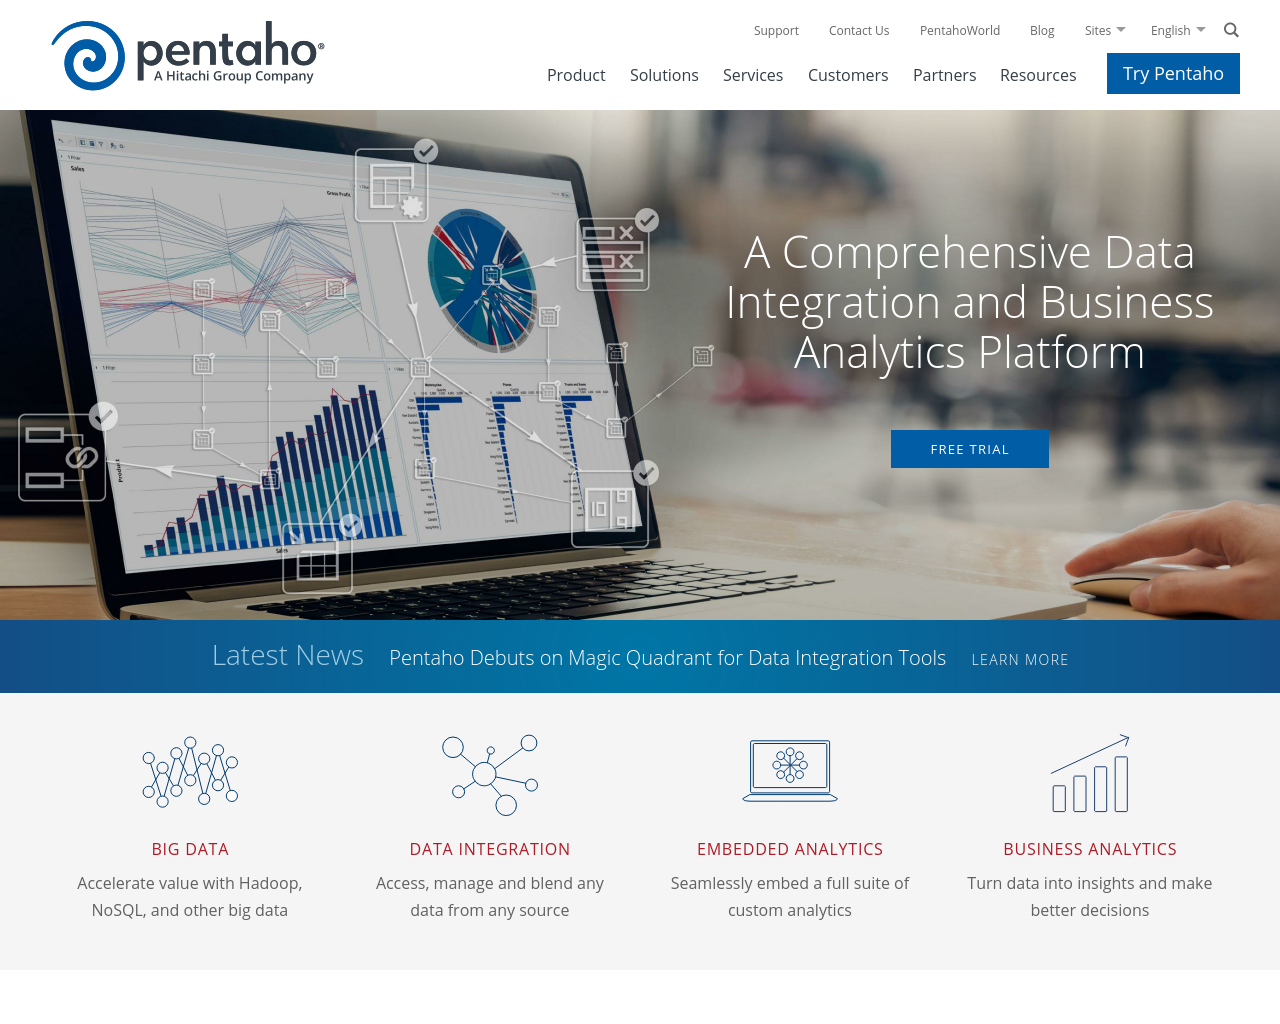 Pentaho-Advertising-Reviews-Pricing